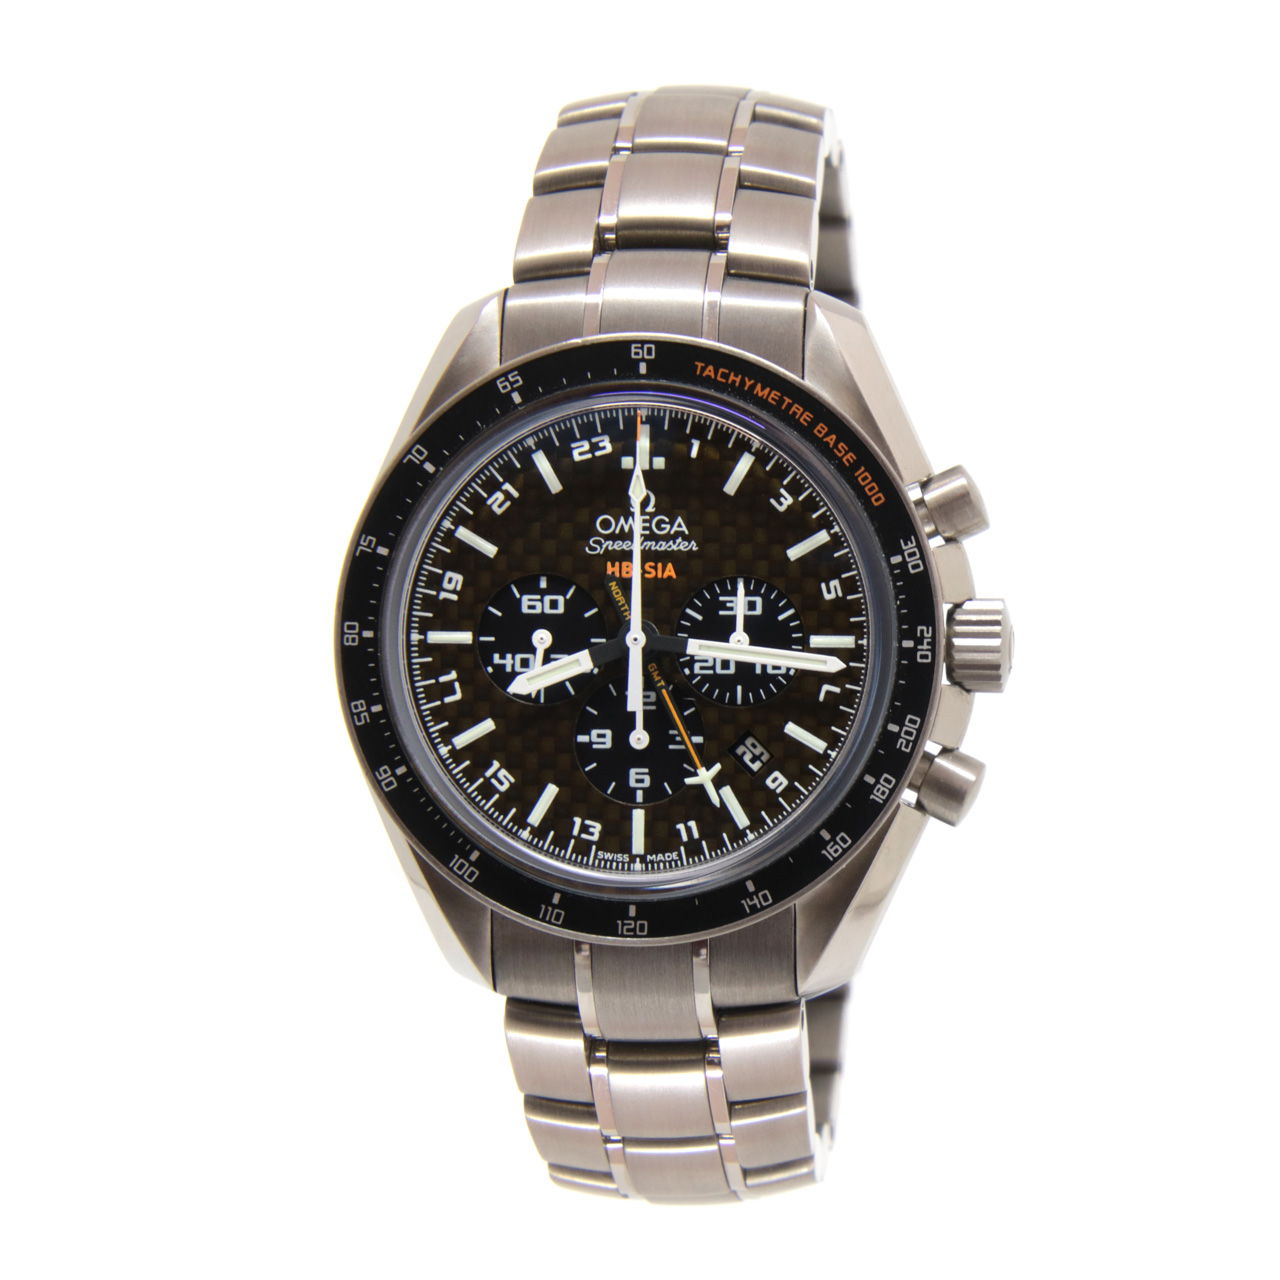 Speedmaster Solar Impulse Chrono GMT Edizione Speciale